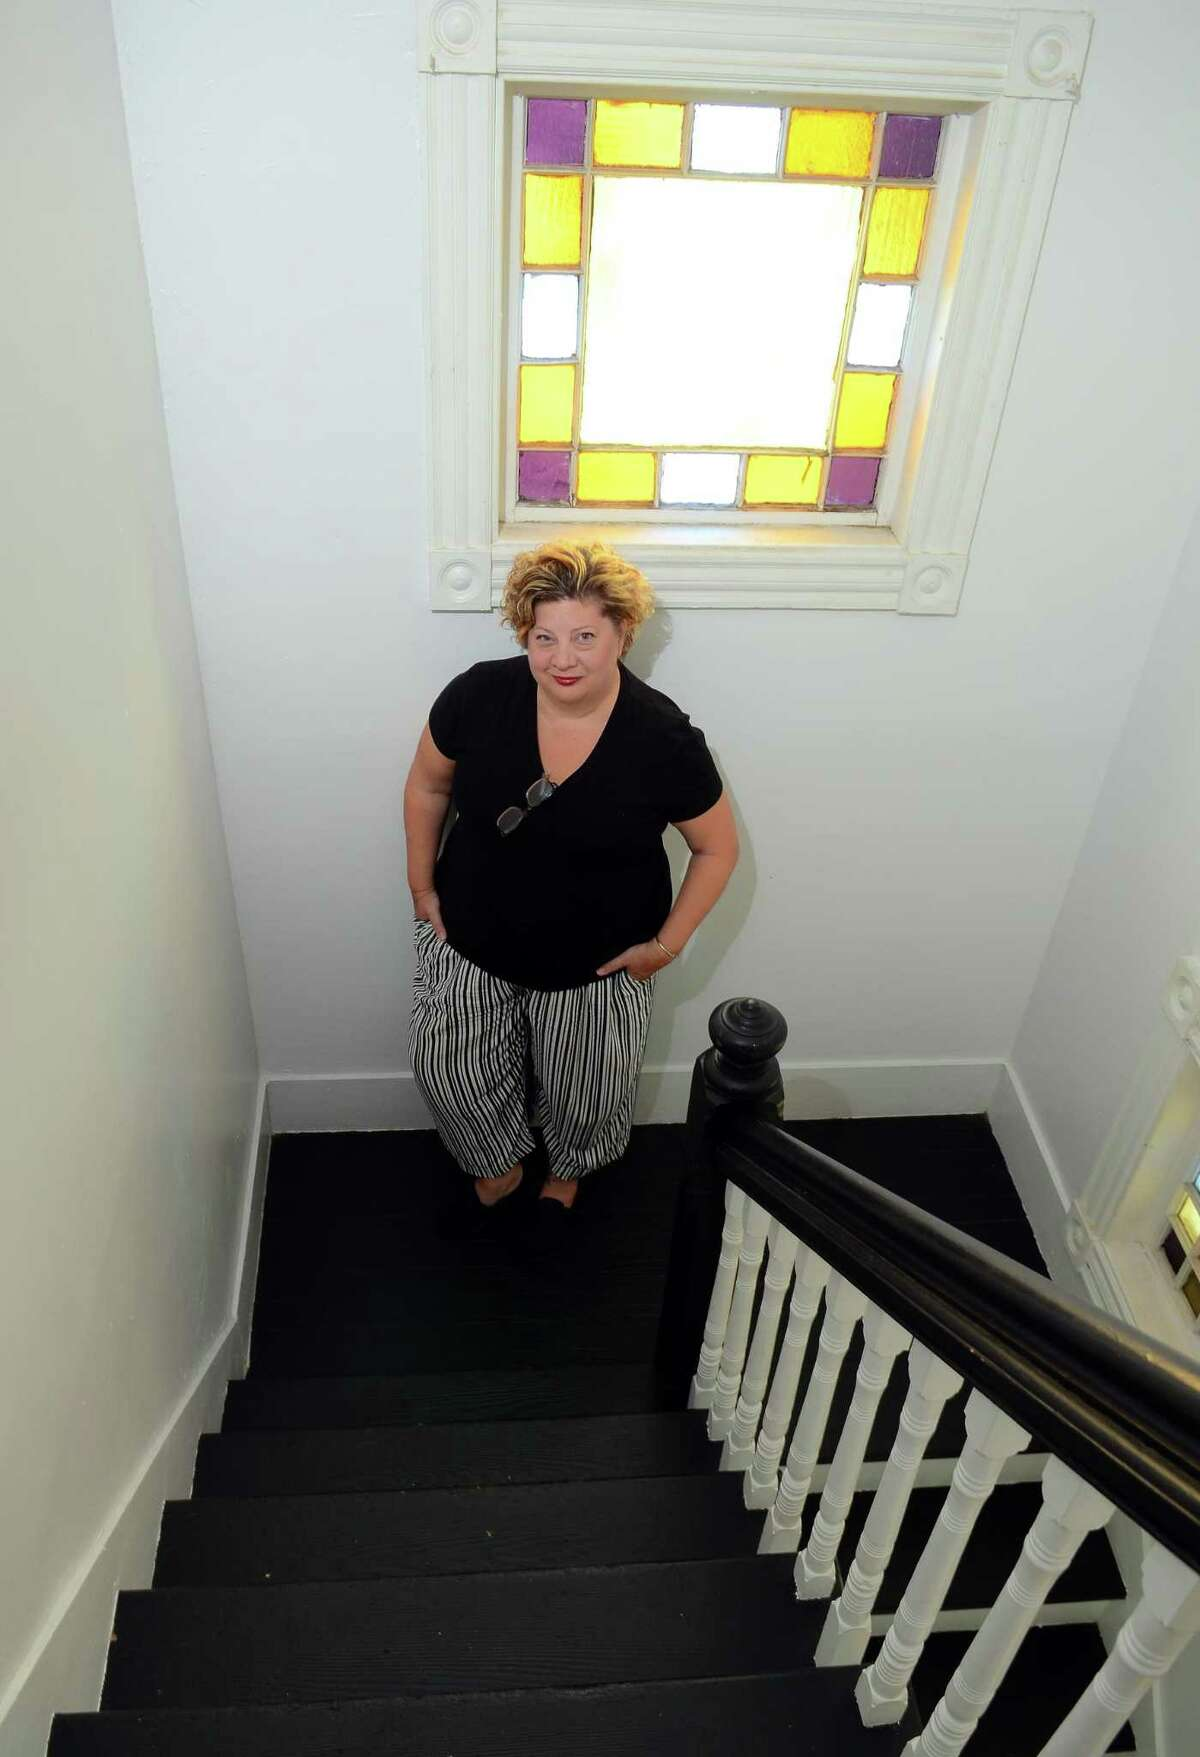 Juliet Novak poses at her home in West Haven, where she has rented space for short-term stays.